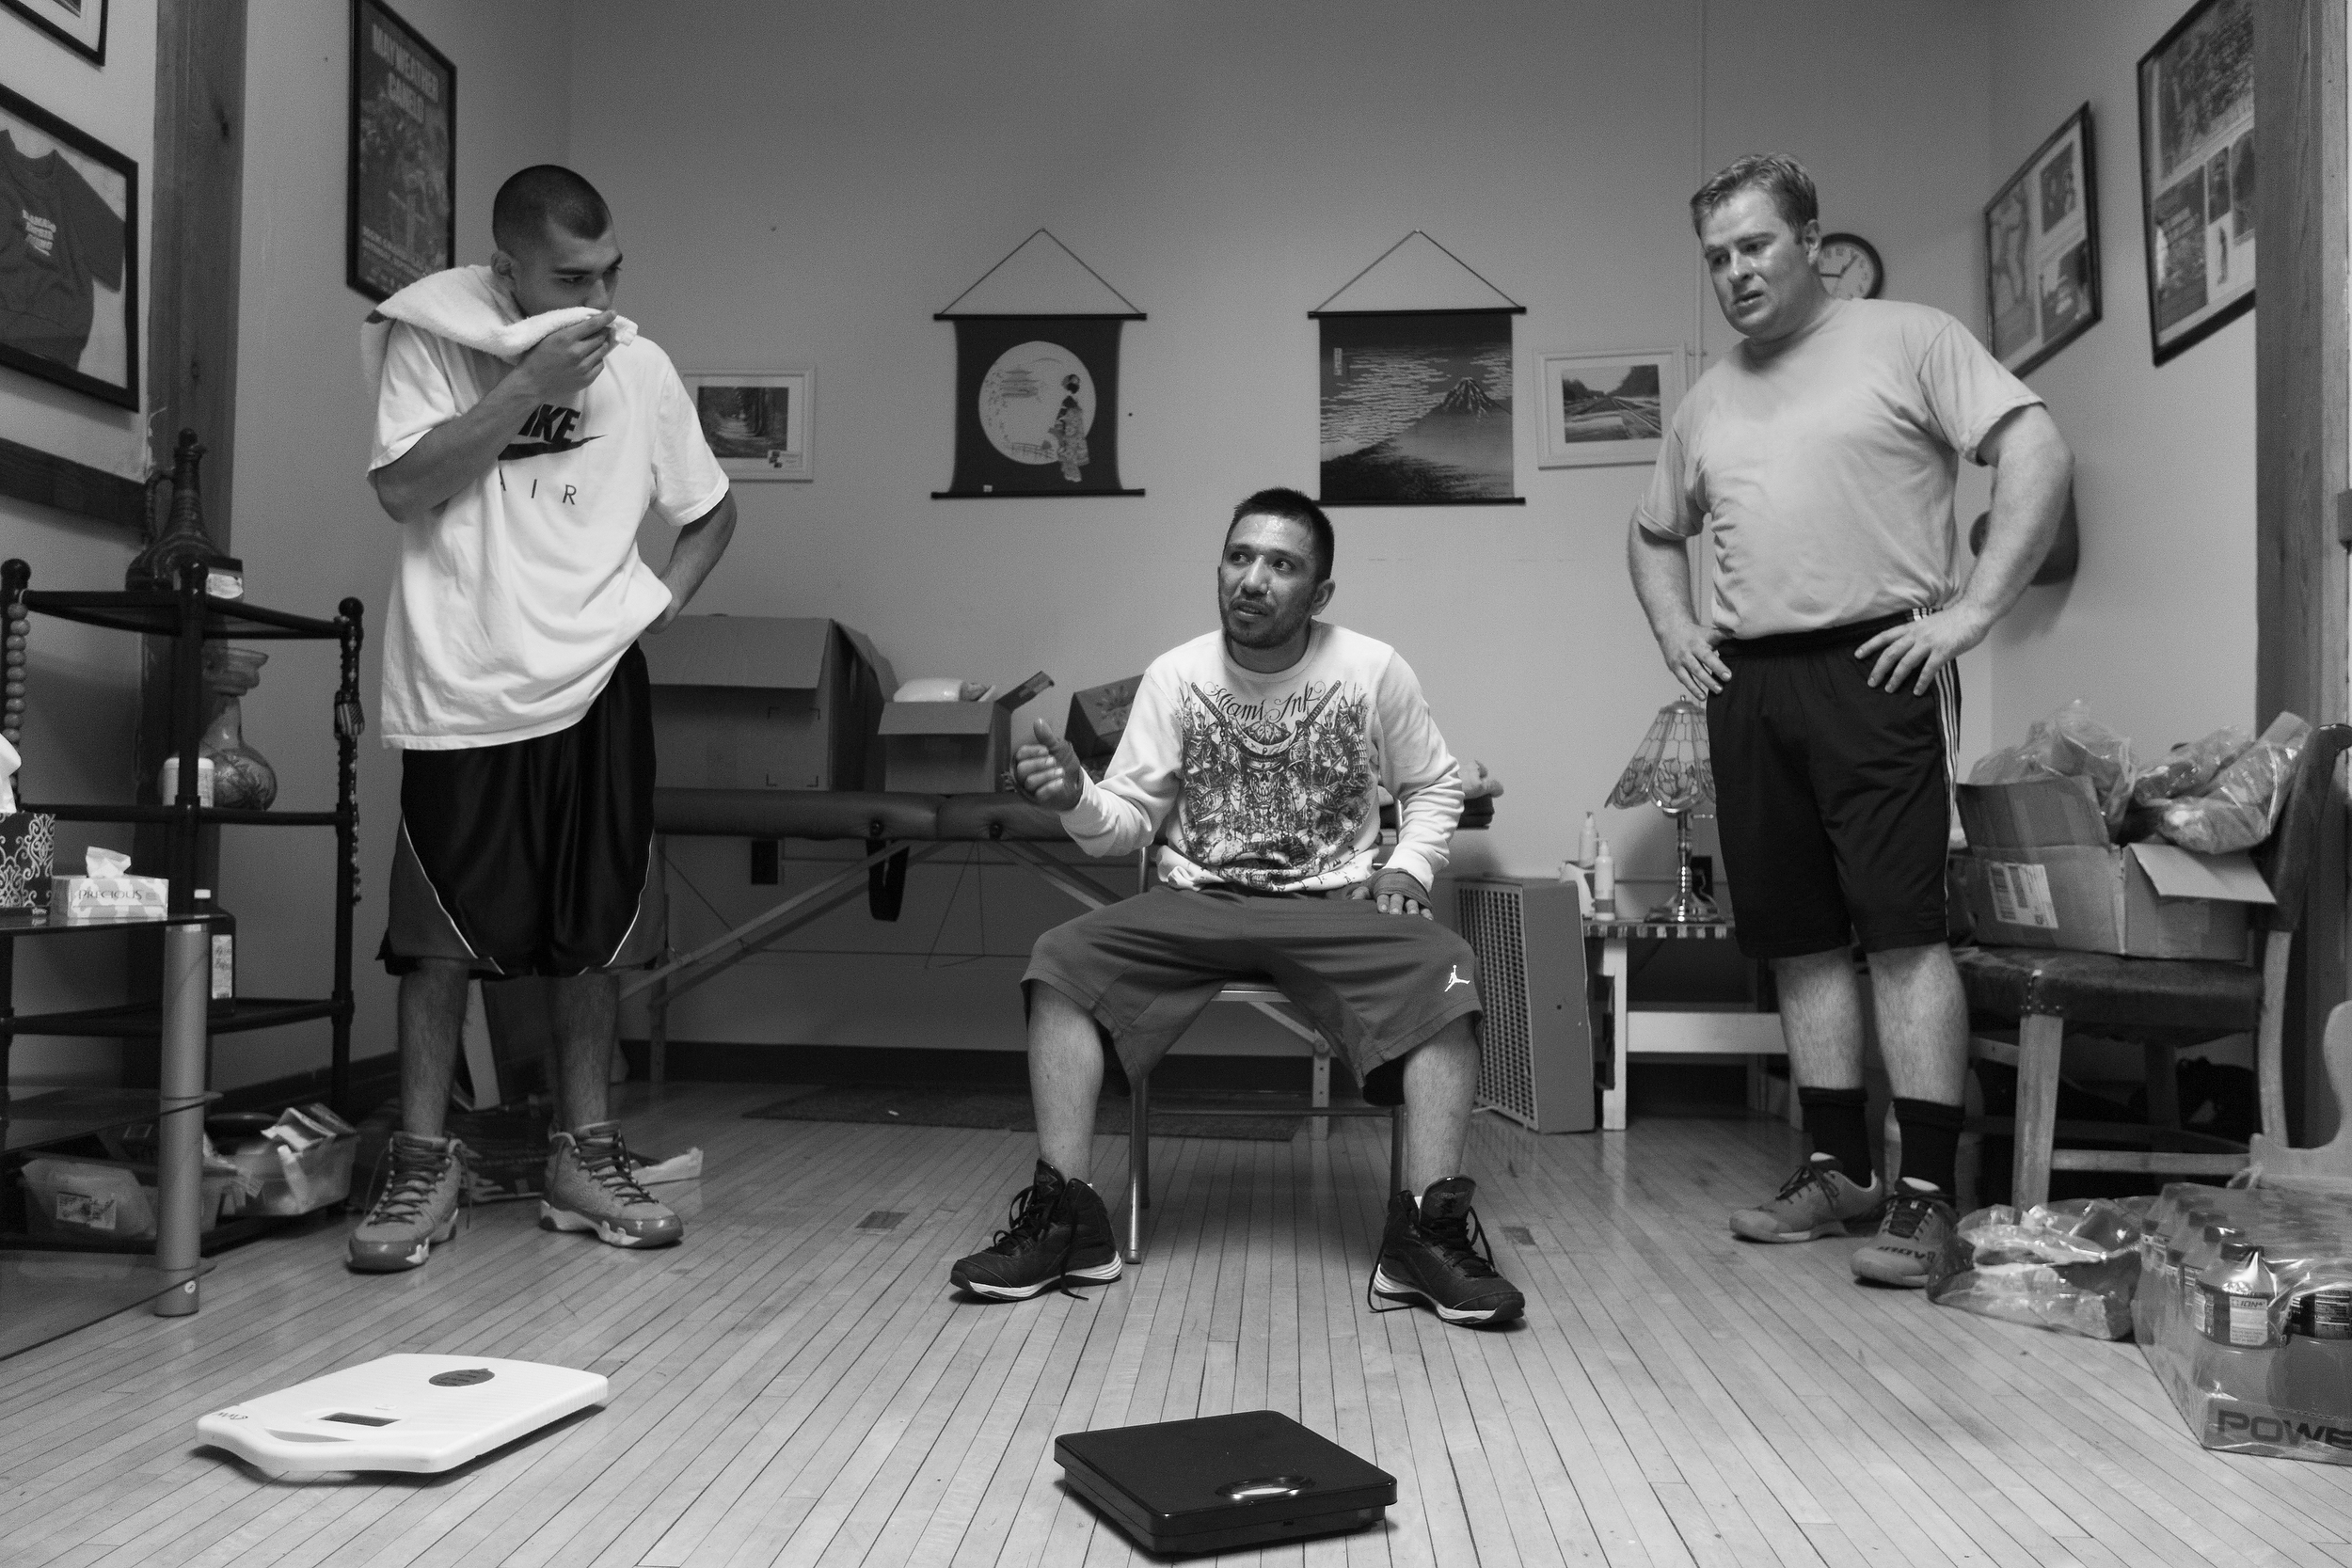 Chuy, left, Santiago �Santos� Garcia, center, and Fletcher stand in Curtis Isaac�s office after boxing practice at Eastside Boxing Club in Kalamazoo, Mich. on May 17, 2016. Garcia won the Michigan Golden Glove novice class state championship at the 108 pound weight class in 2015 and 2016. (Bryan Bennett | MLive.com)